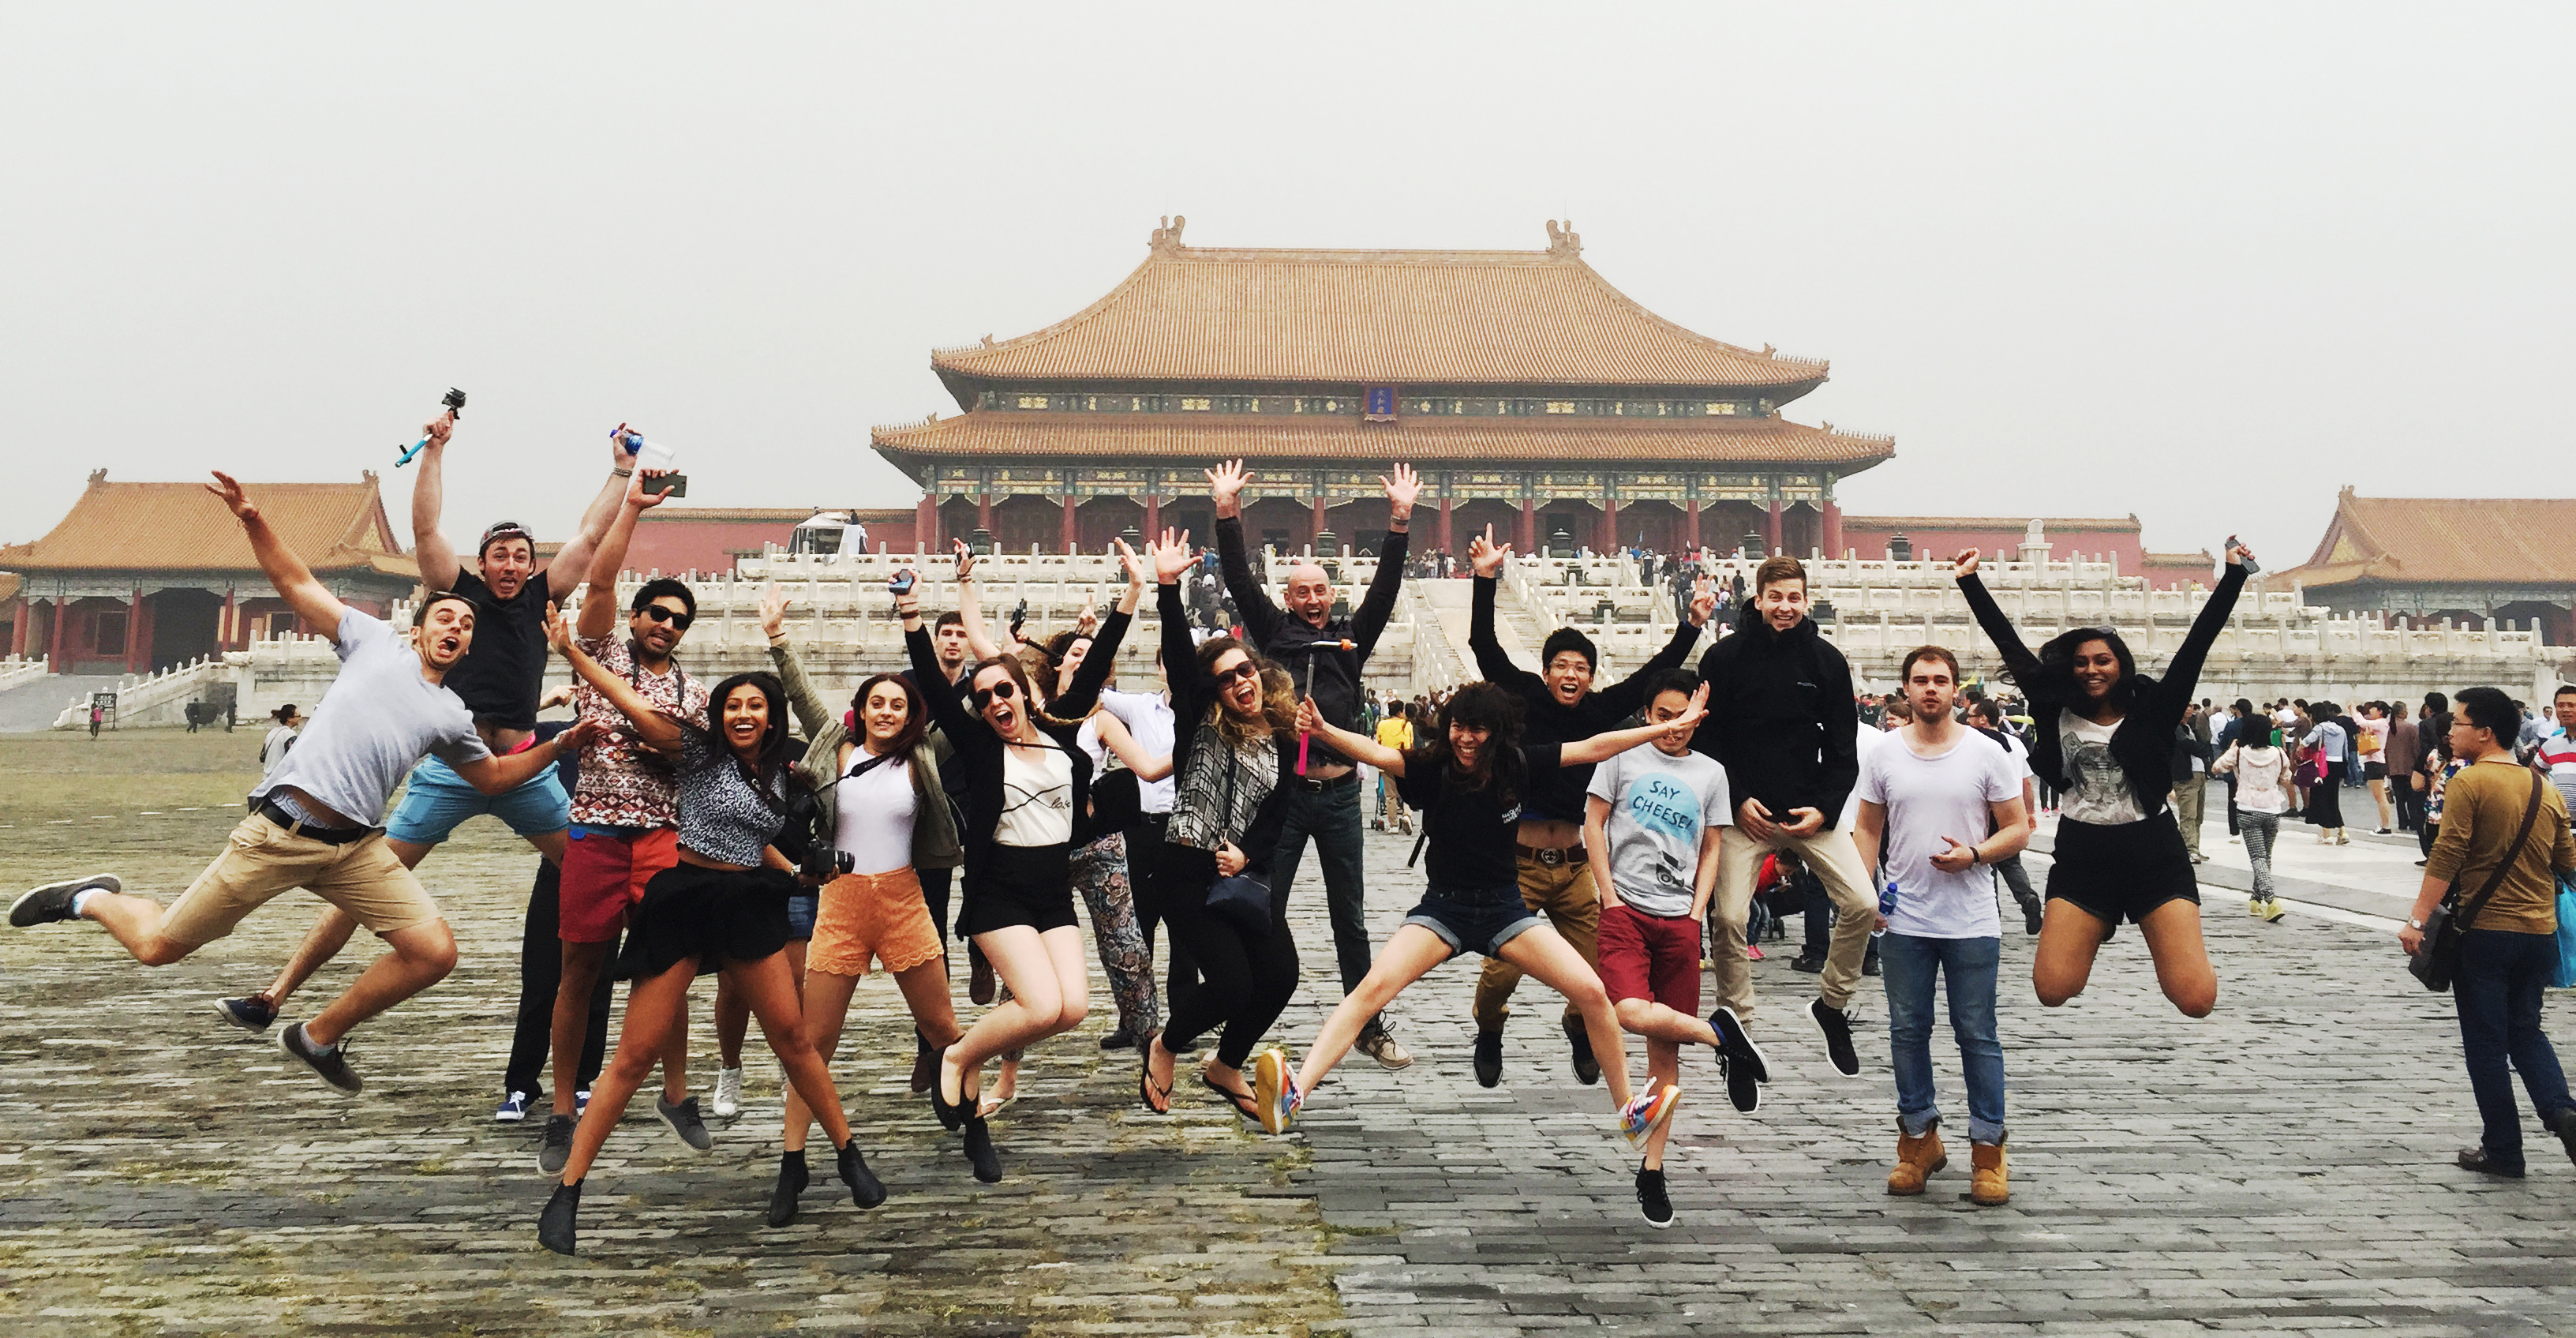 Business students from Macquarie University experience the Chinese culture, lifestyle and approach to business first-hand in China study tour